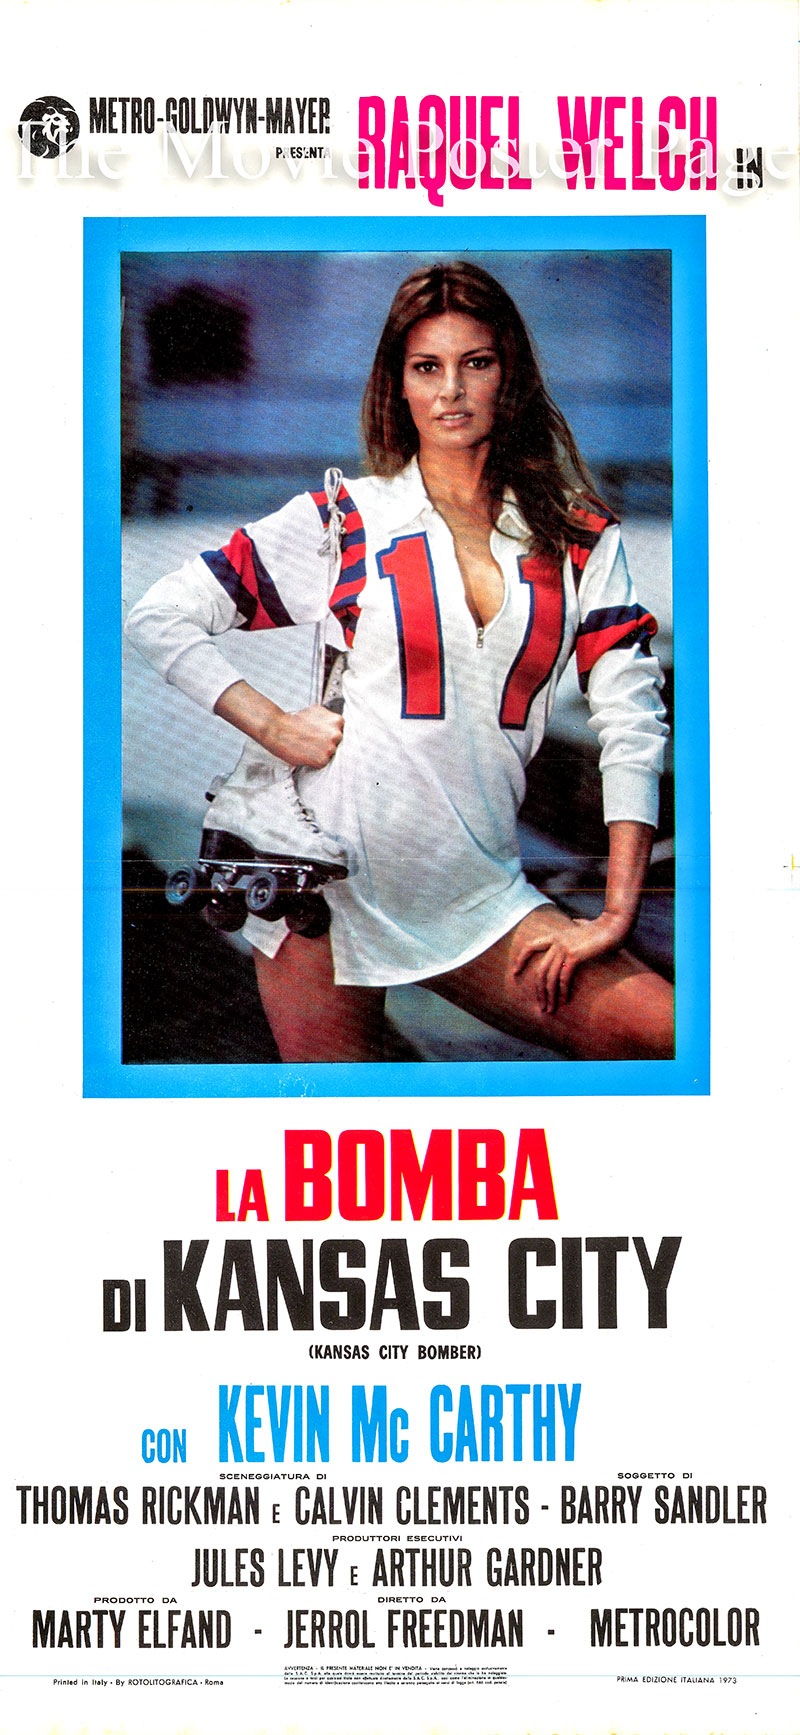 Pictured is an Italian locandina poster for the 1972 Jerrold Freedman film Kansas City Bomber starring Raquel Welch as K.C. Carr.